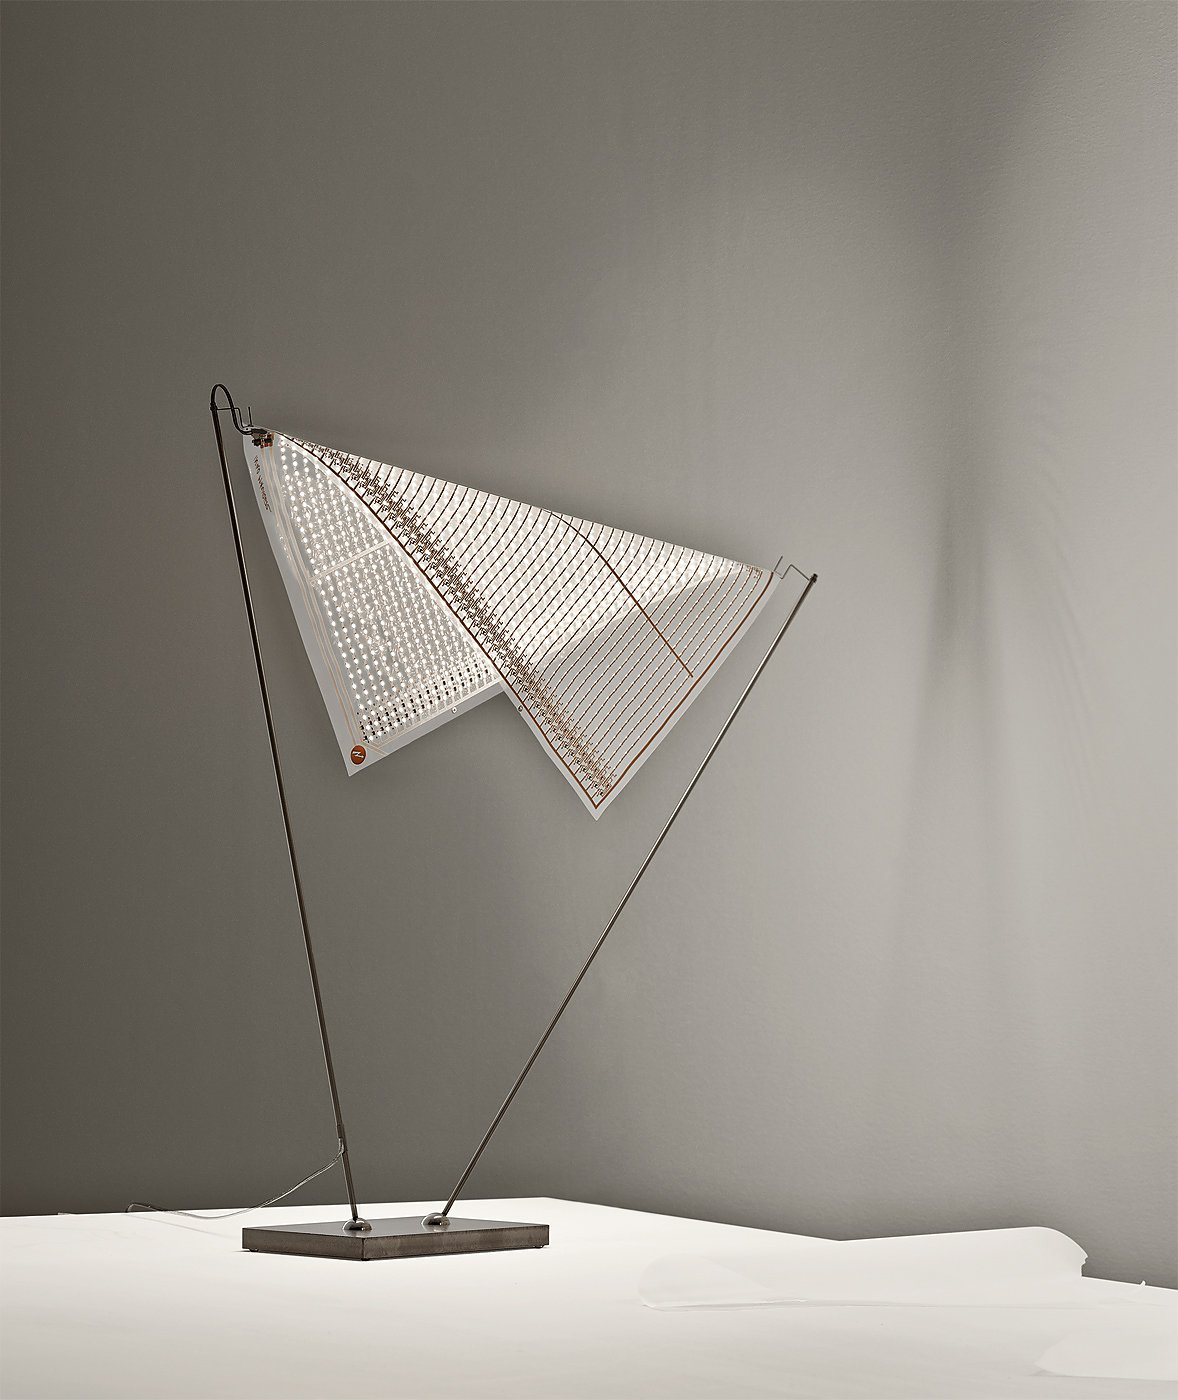 Dew Drops Table Lamp by Ingo Maurer